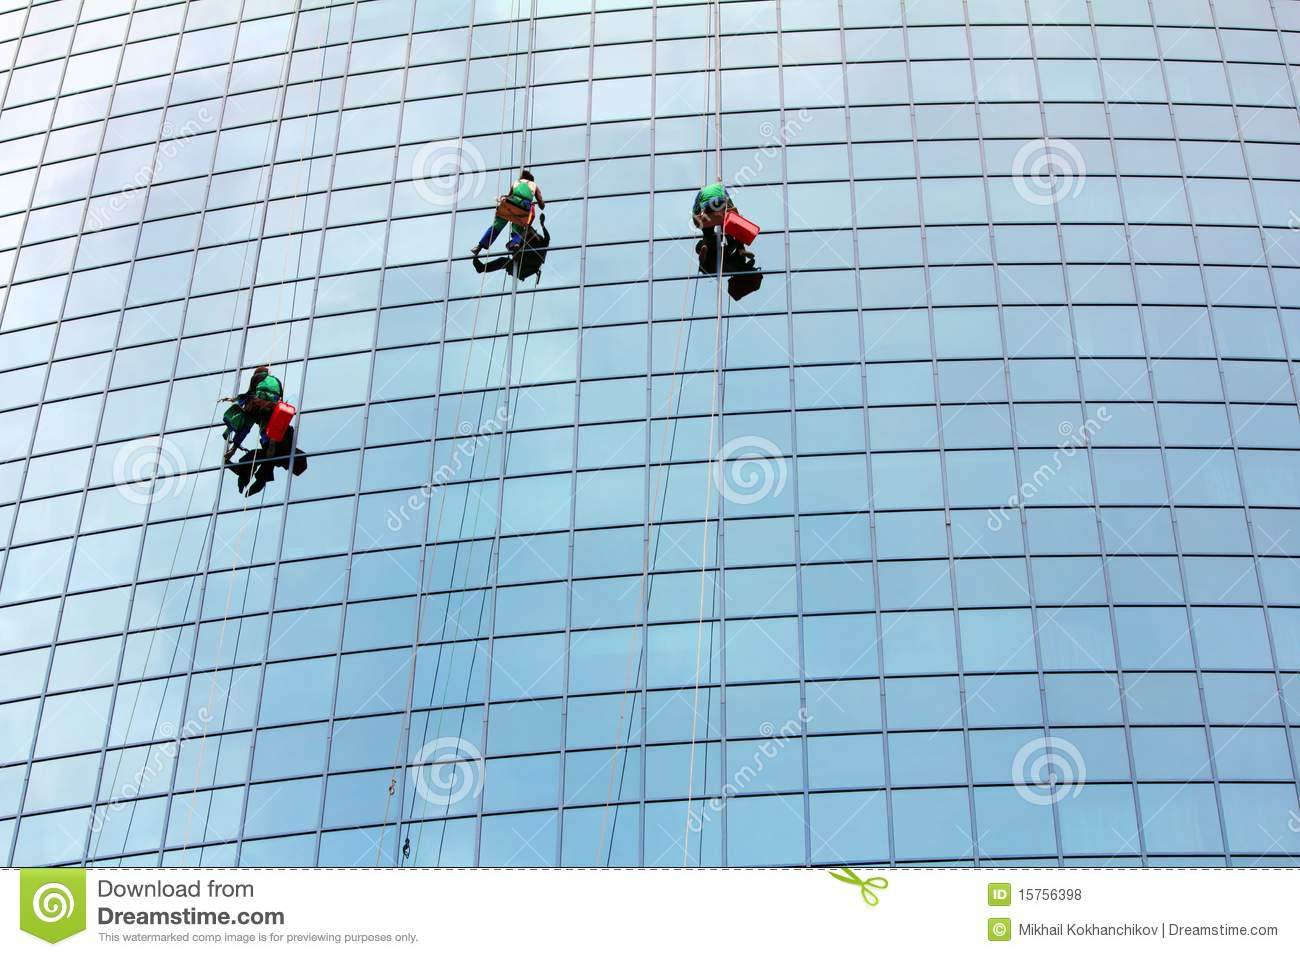 download window cleaner job description download window cleaner job description - Window Cleaner Job Description